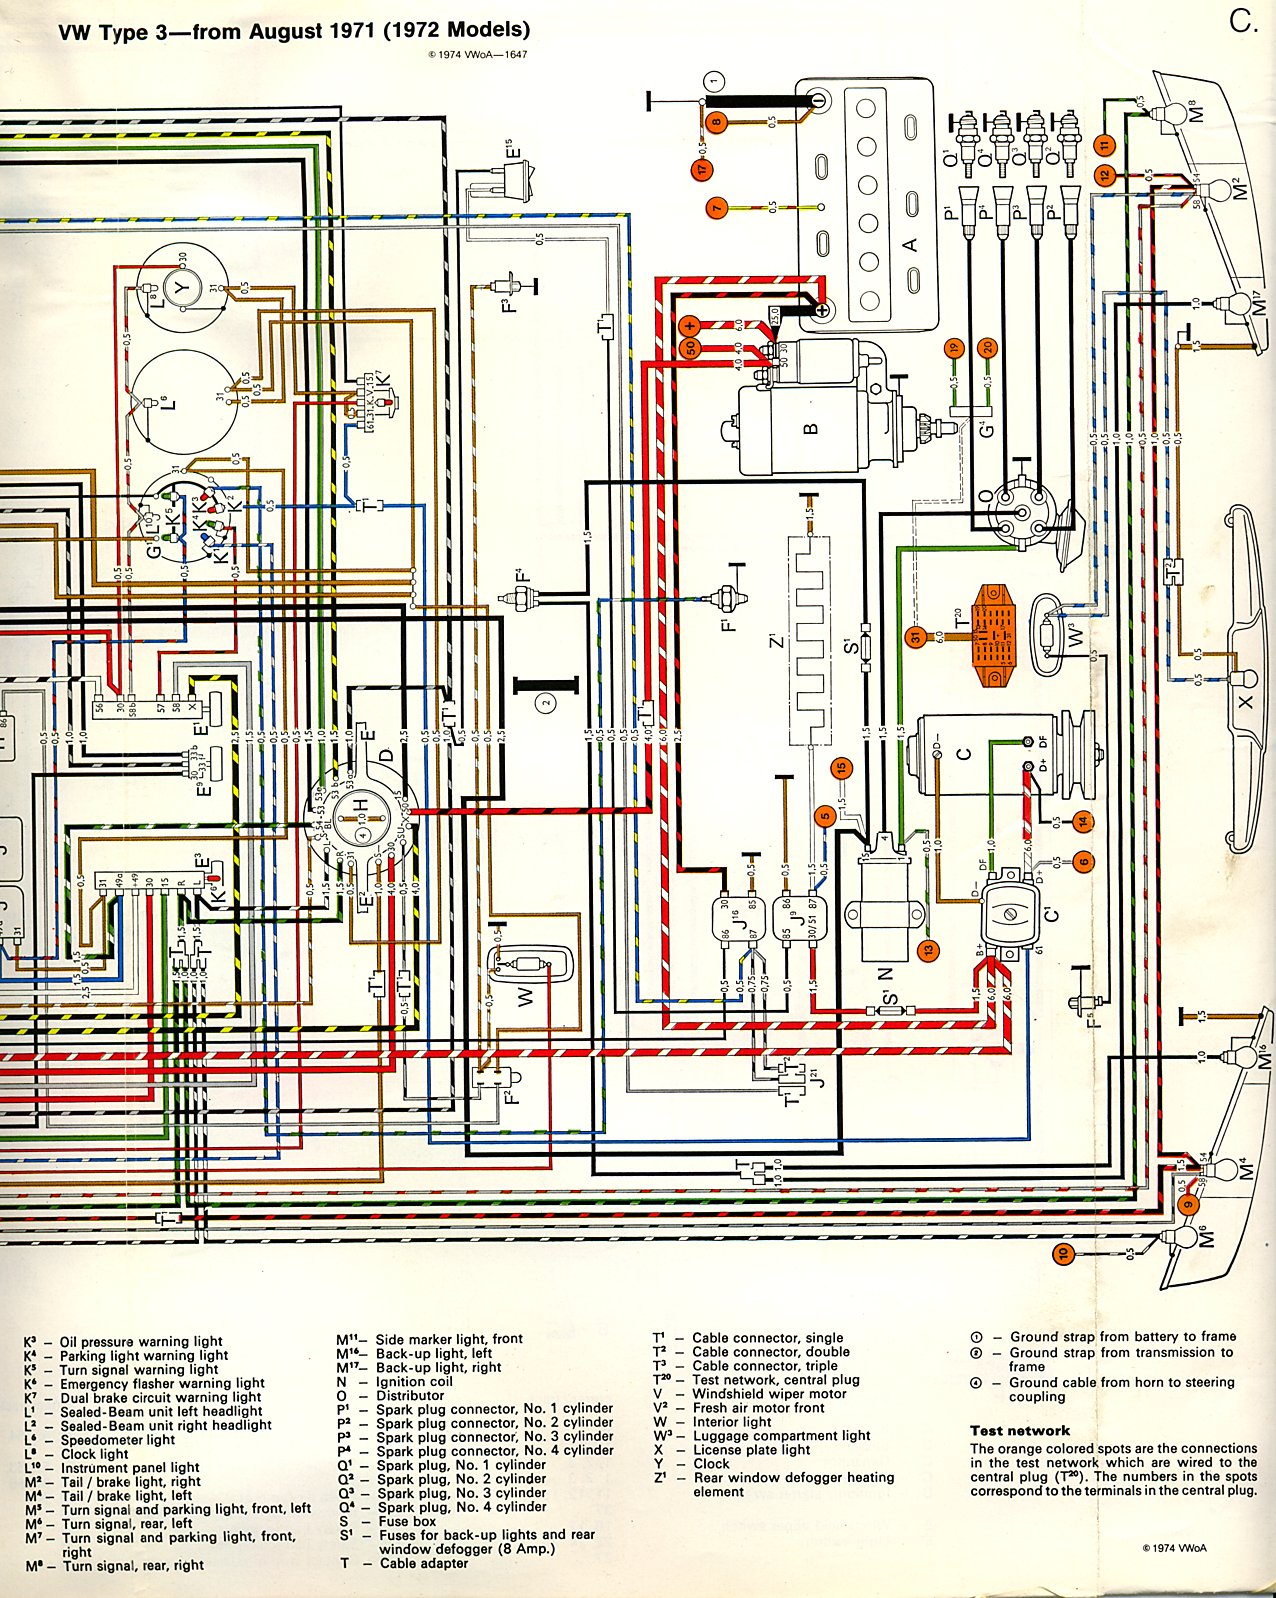 1964 type 3 vw wiring diagram   29 wiring diagram images